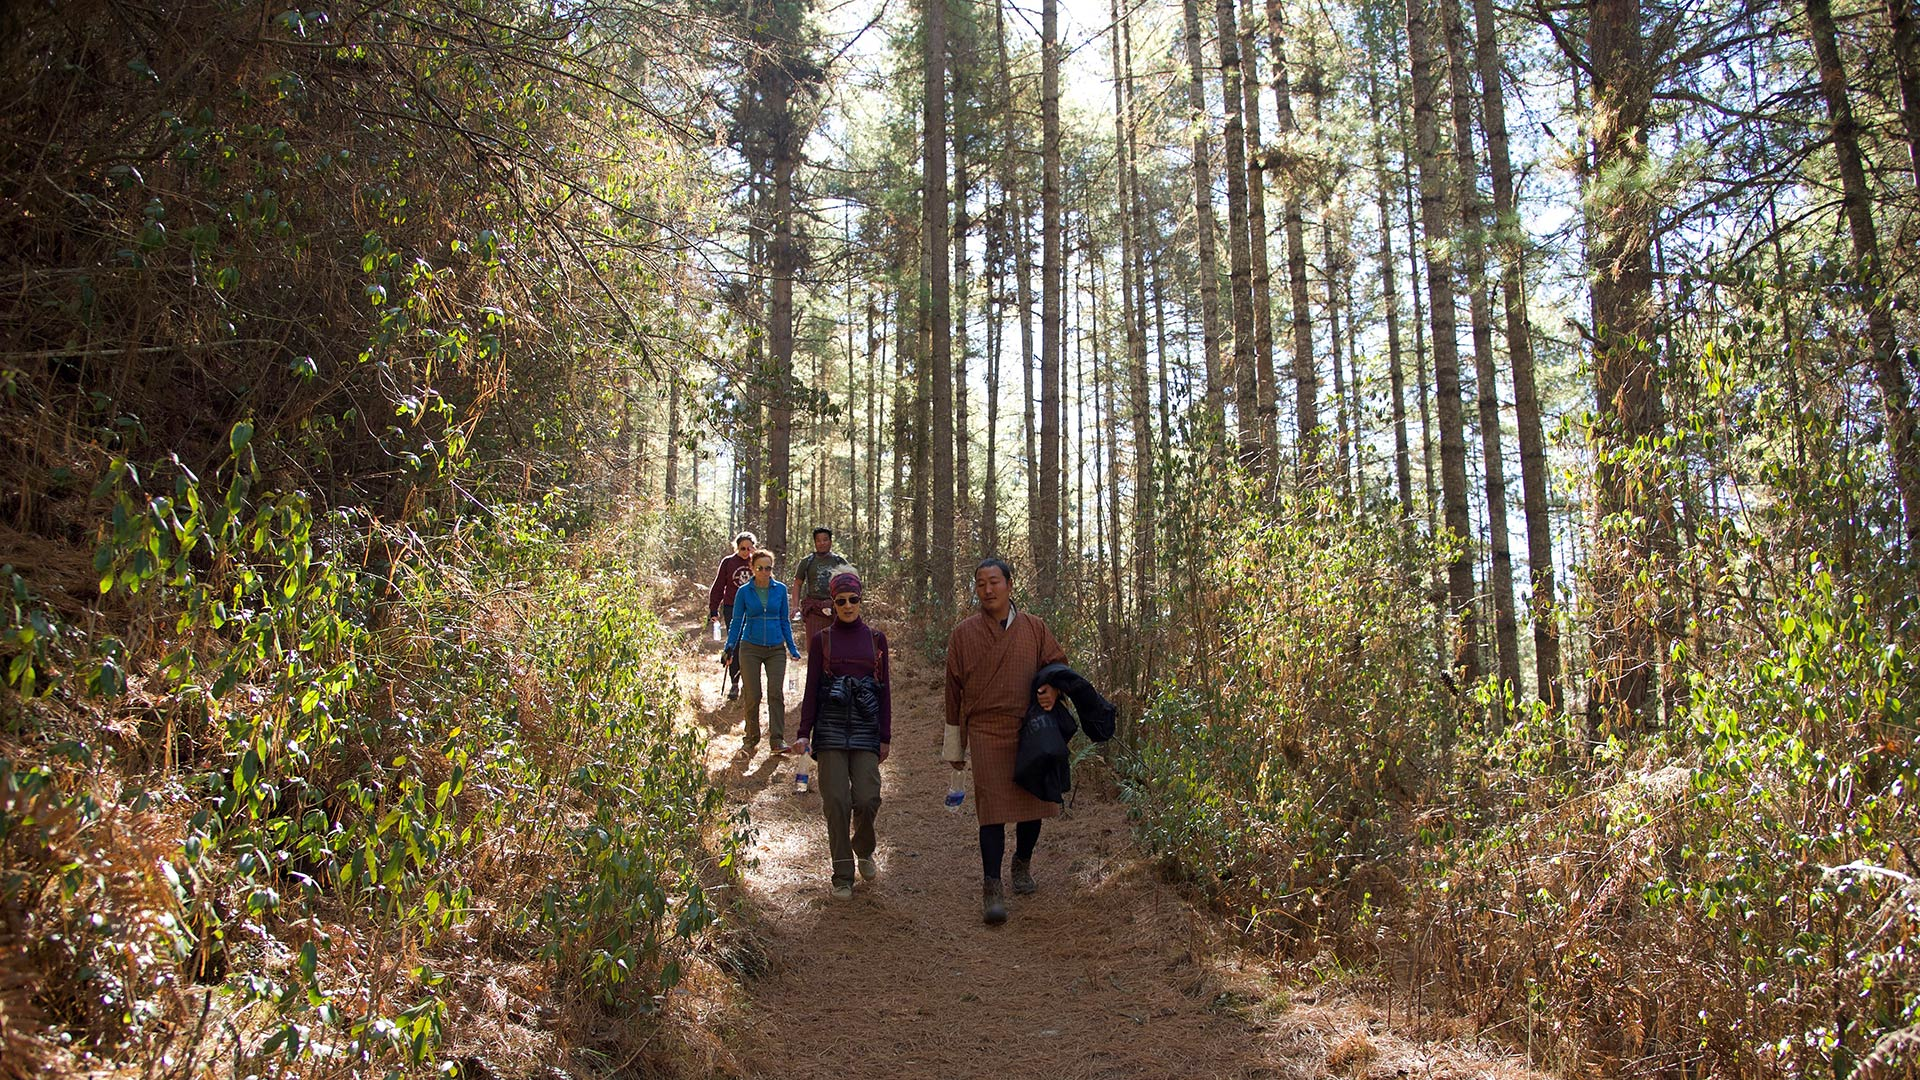 Hikers along a trail in the forests of Bhutan